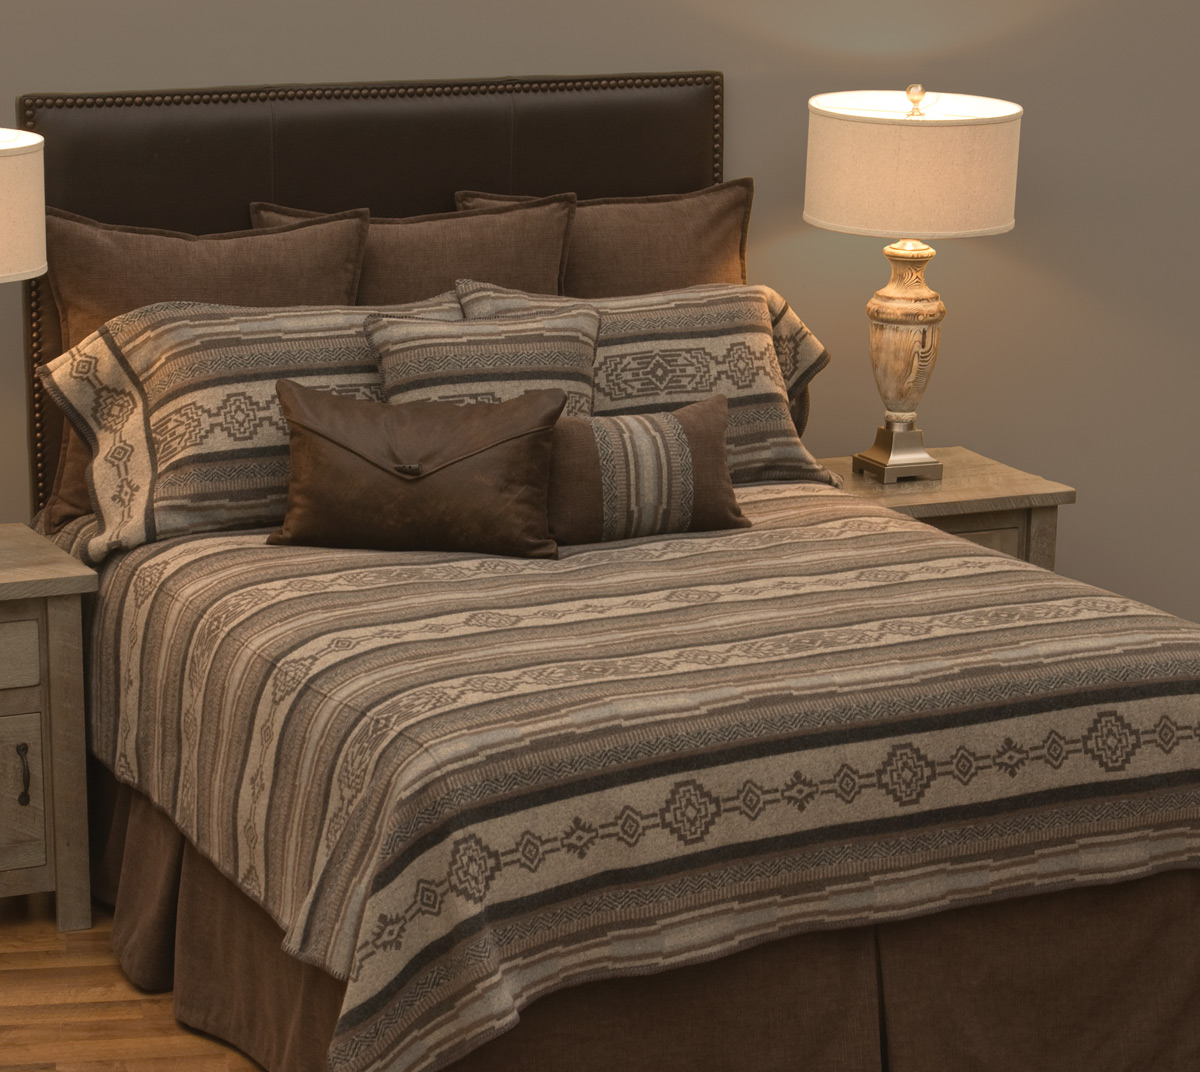 Black Forest Decor Lodge lux bedspread - full/queen